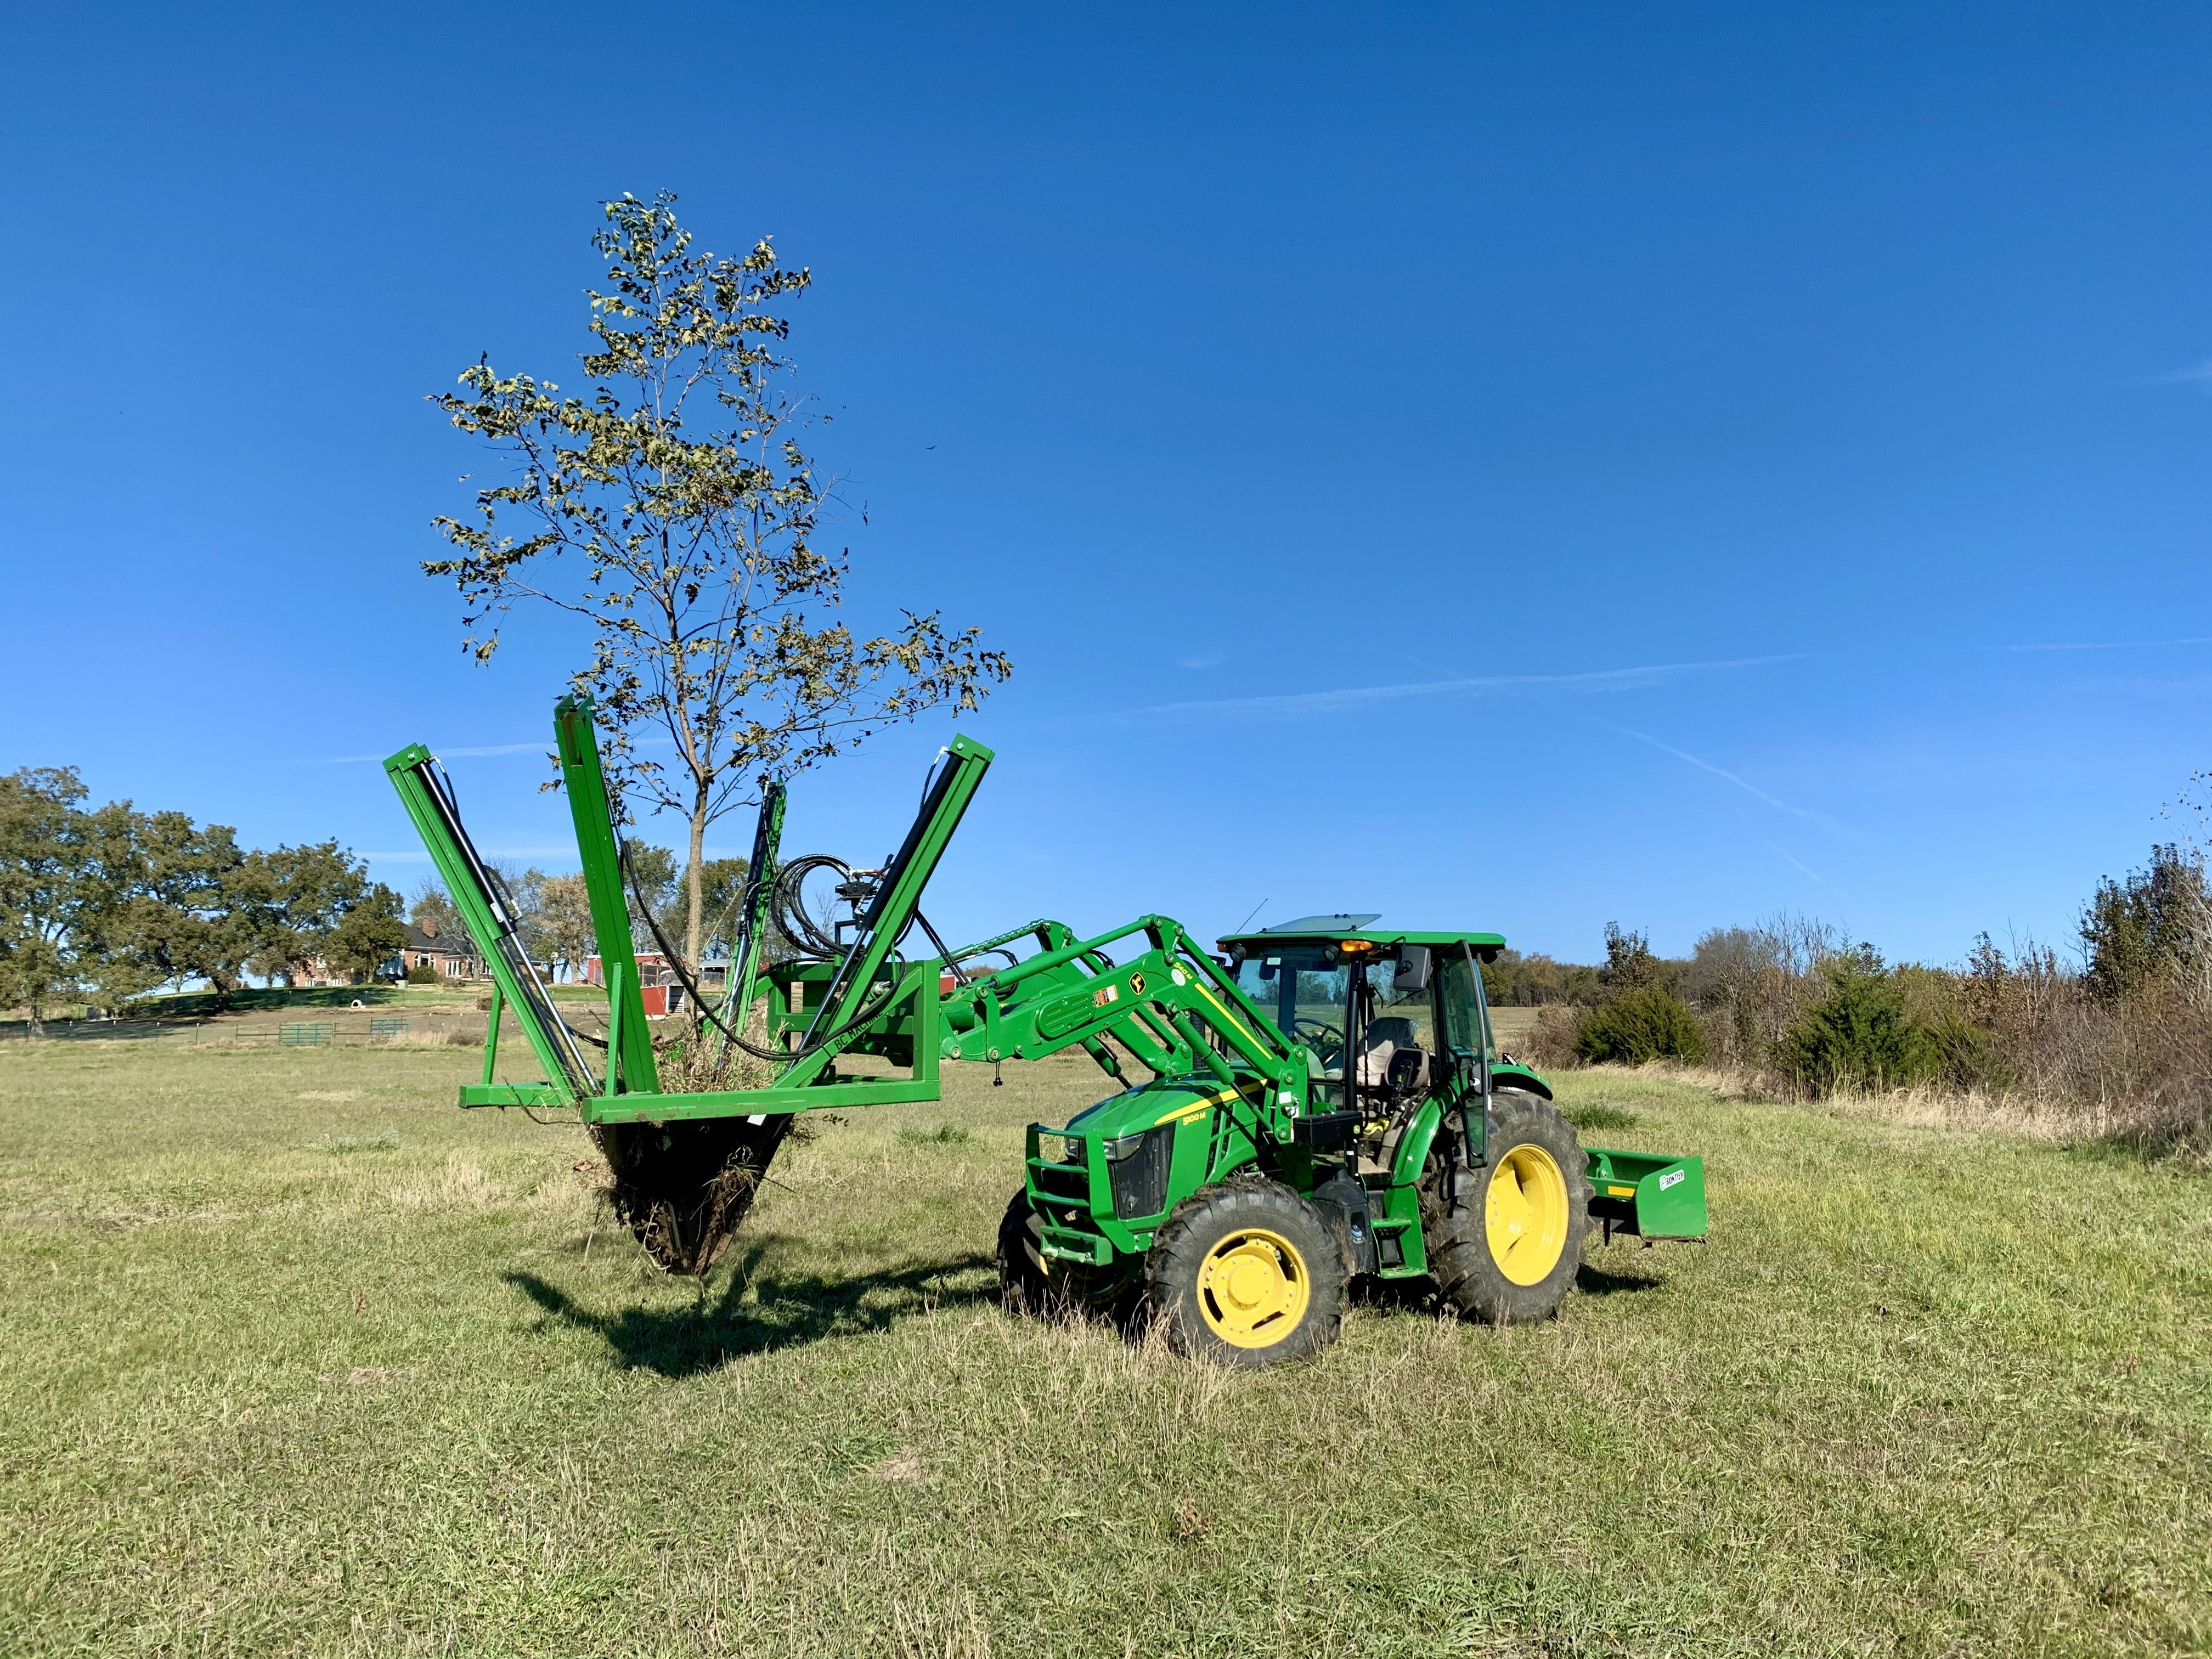 Moved 10 trees with a tree speed rented on the